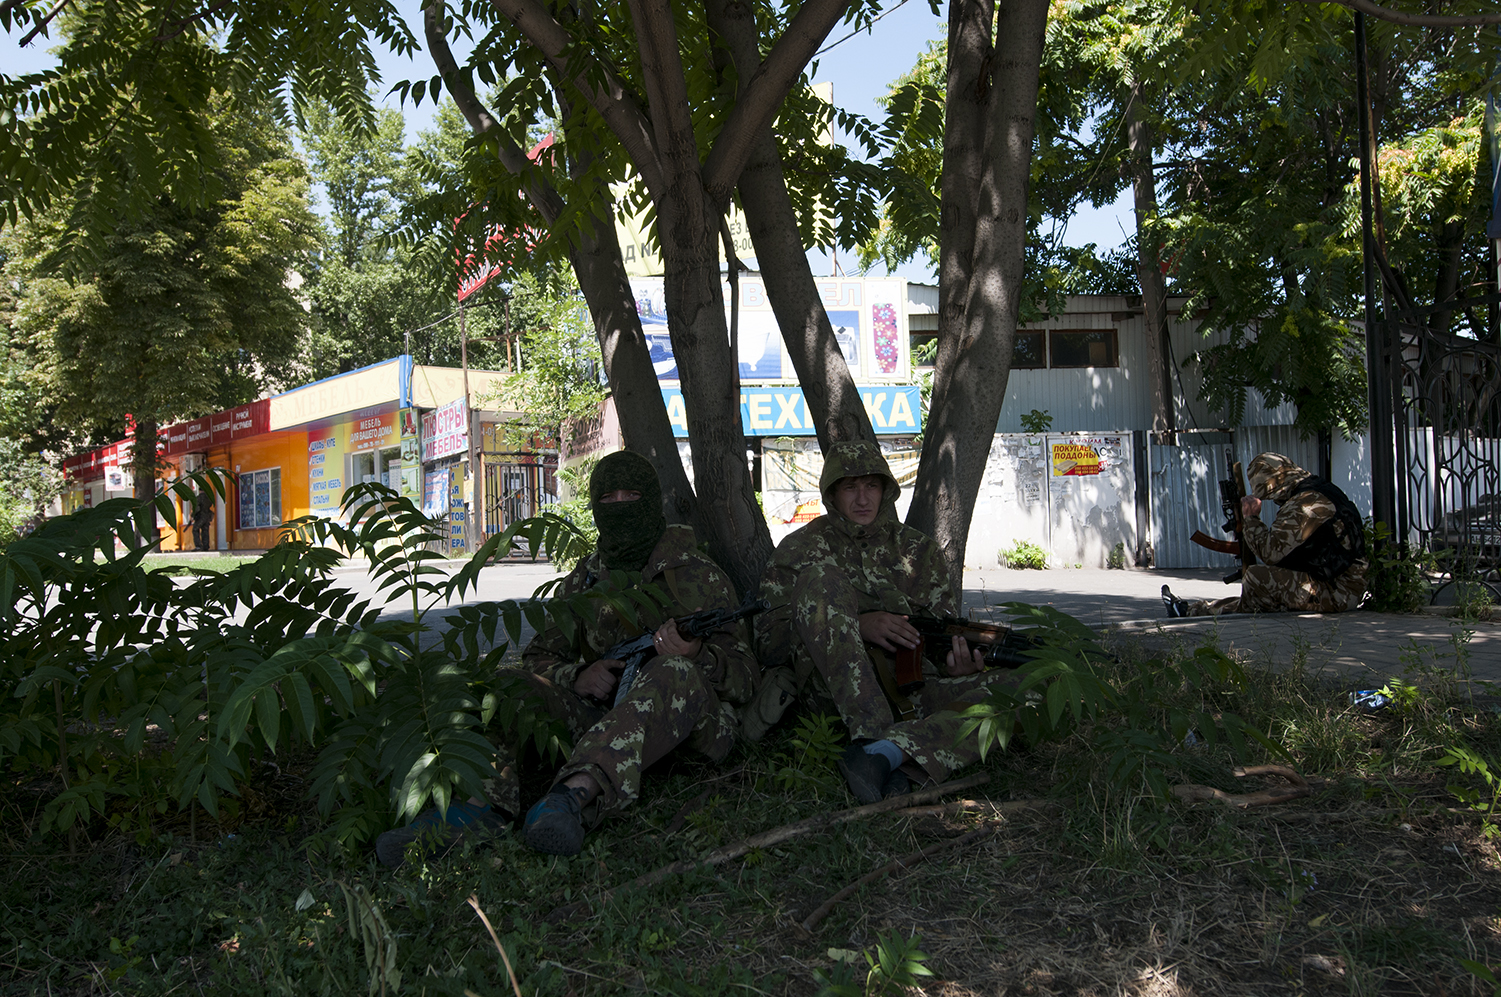 Armed men waiting in the shade